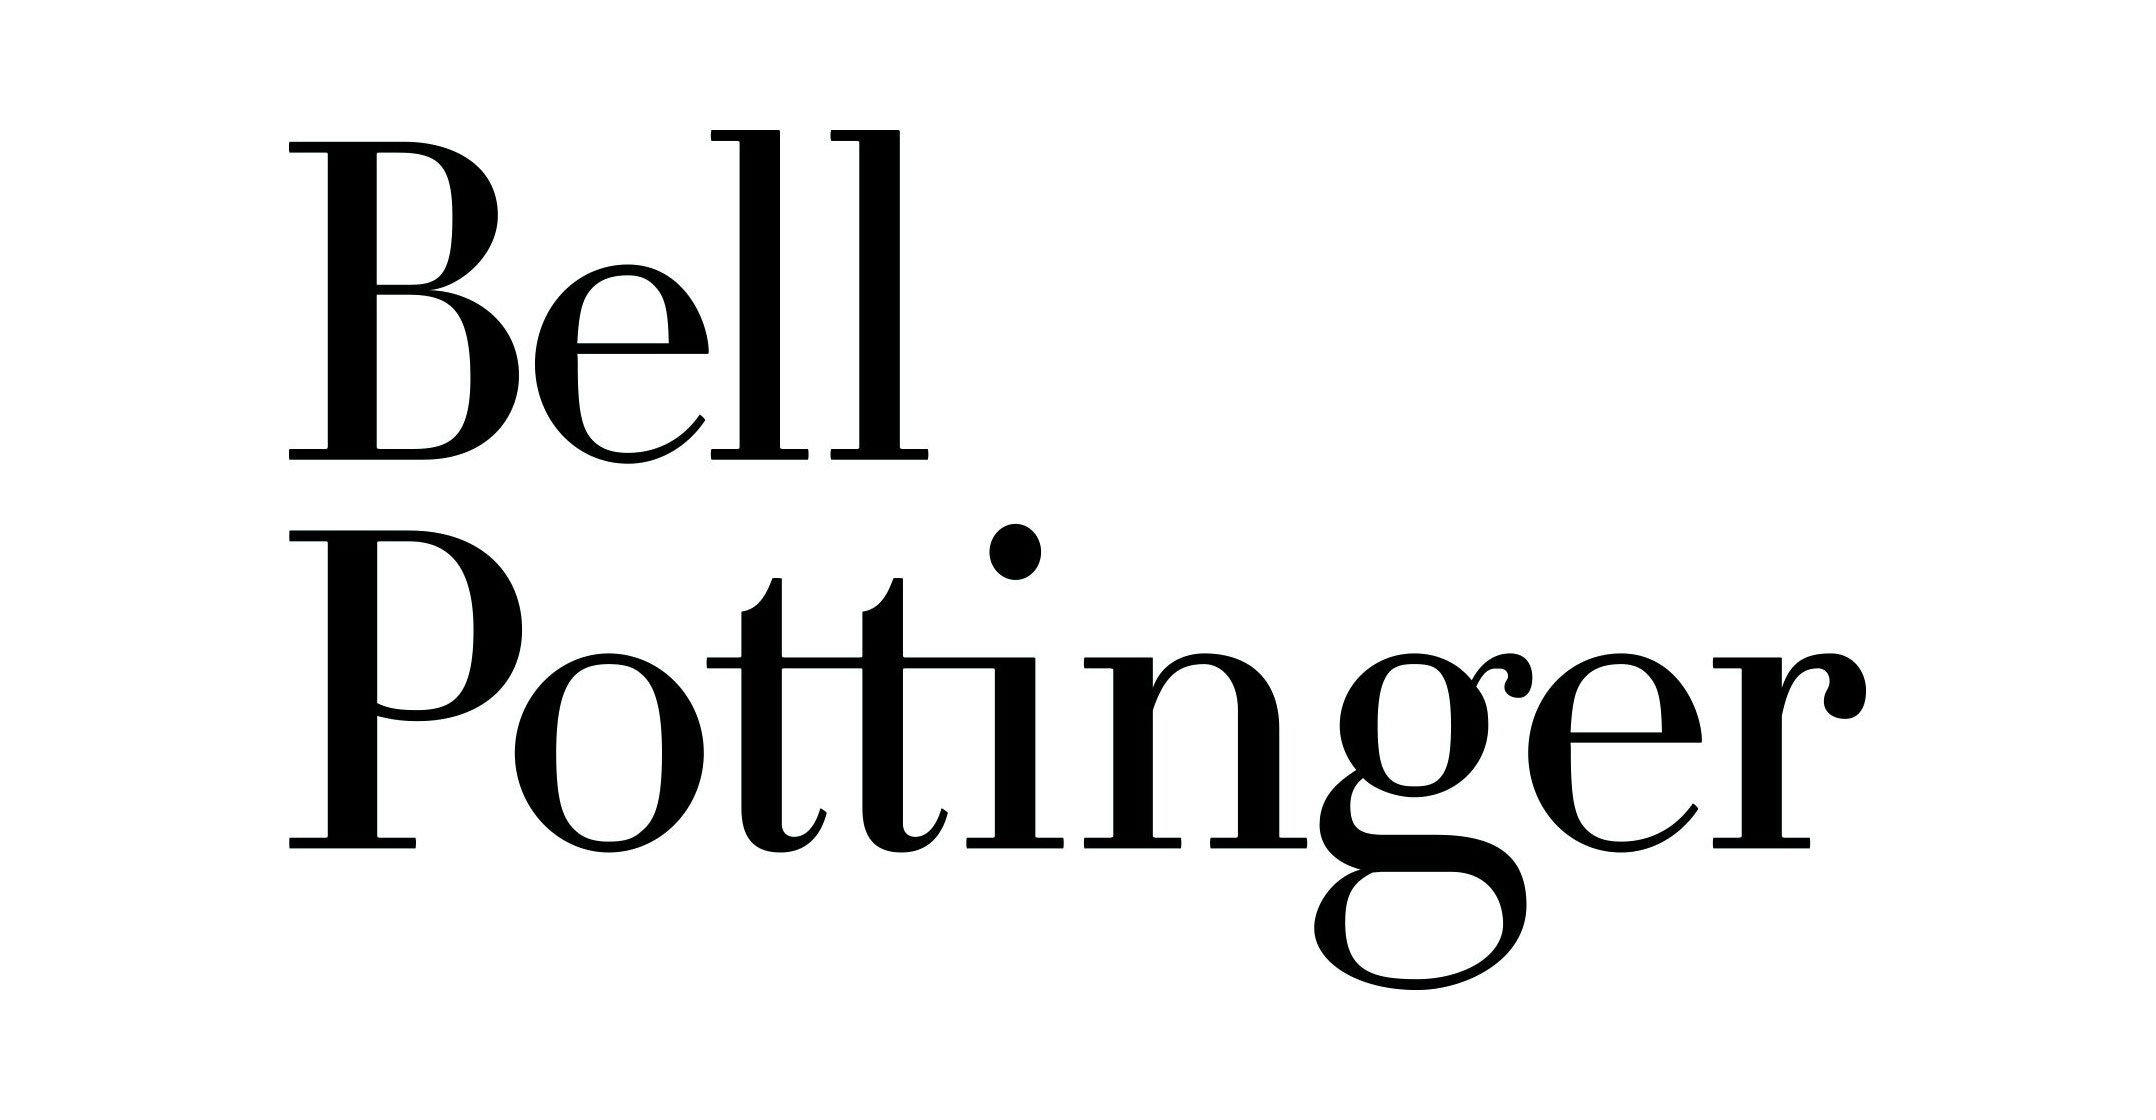 Bell Pottinger 'faces collapse' as investors rush for exit